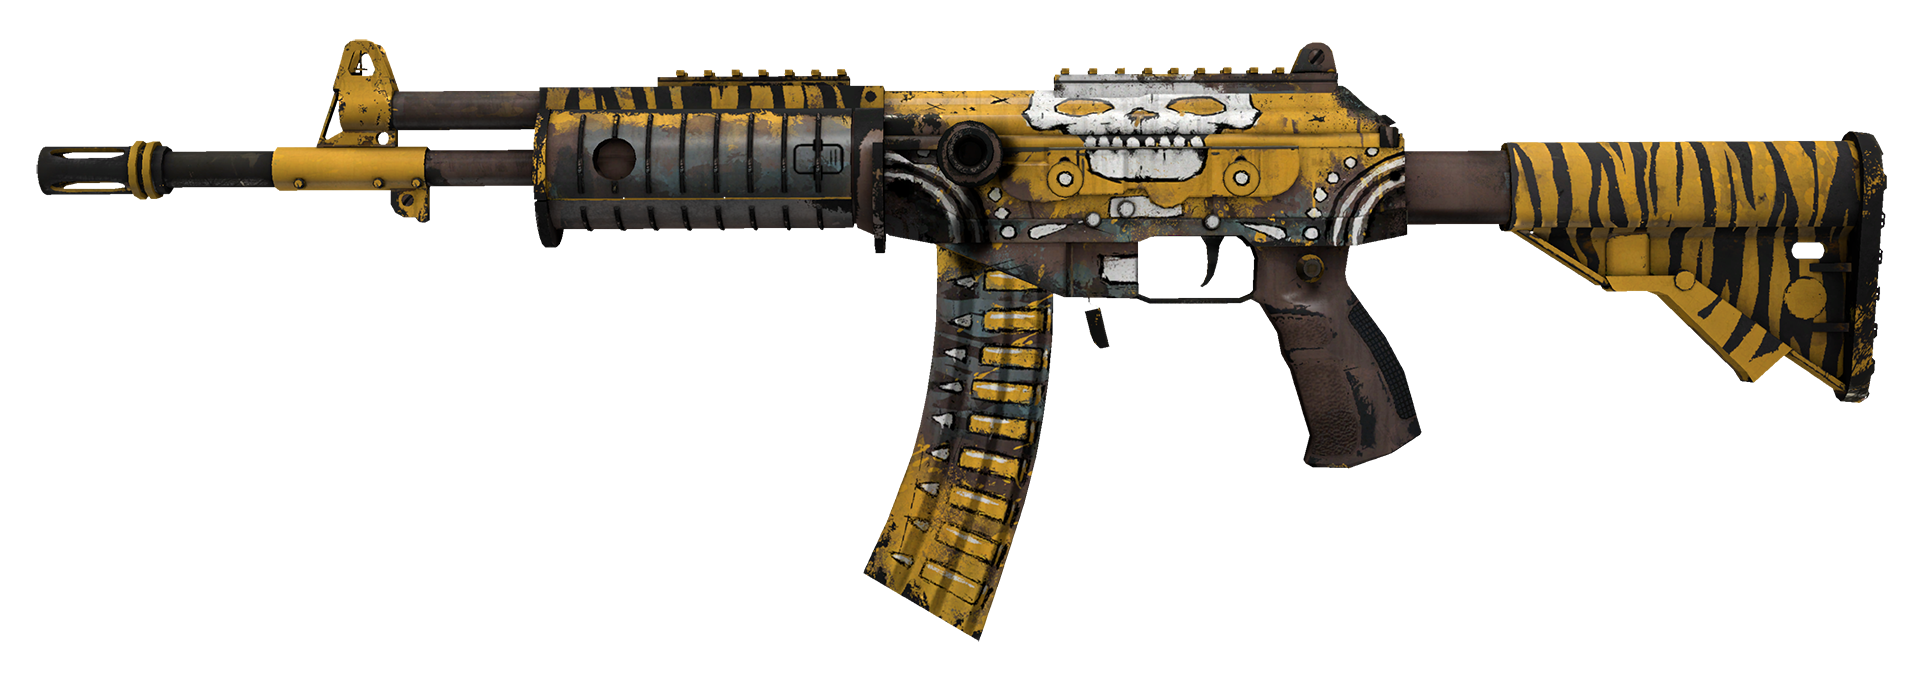 Galil AR Chatterbox Large Rendering